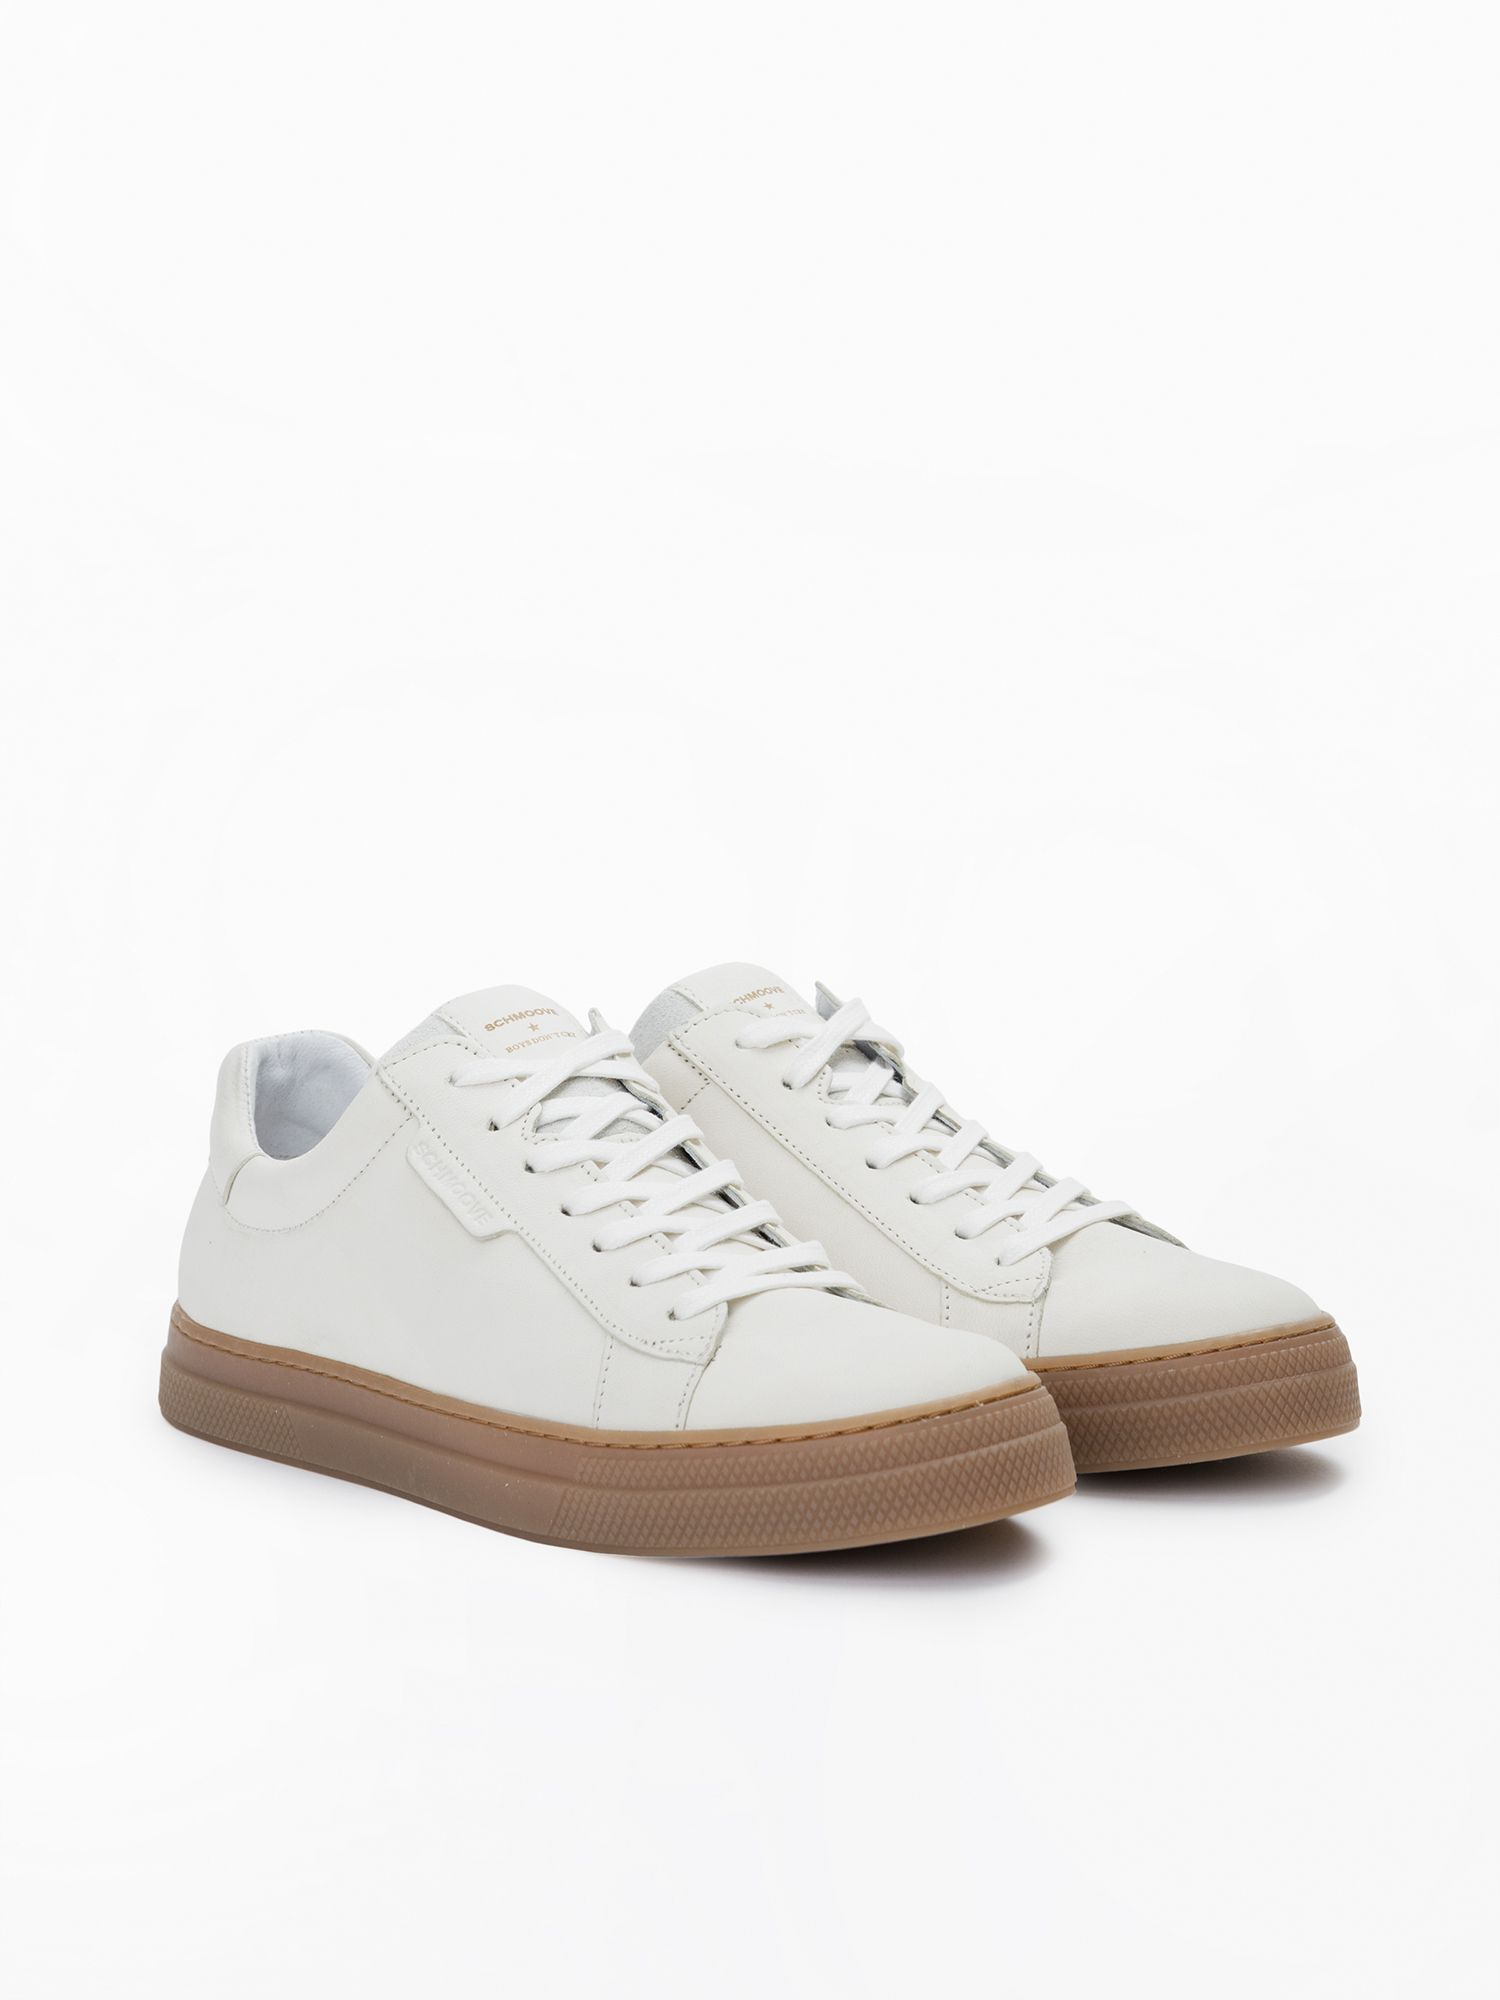 schmoove.fr Spark Clay - Nubuck - White Sole L. Gomme